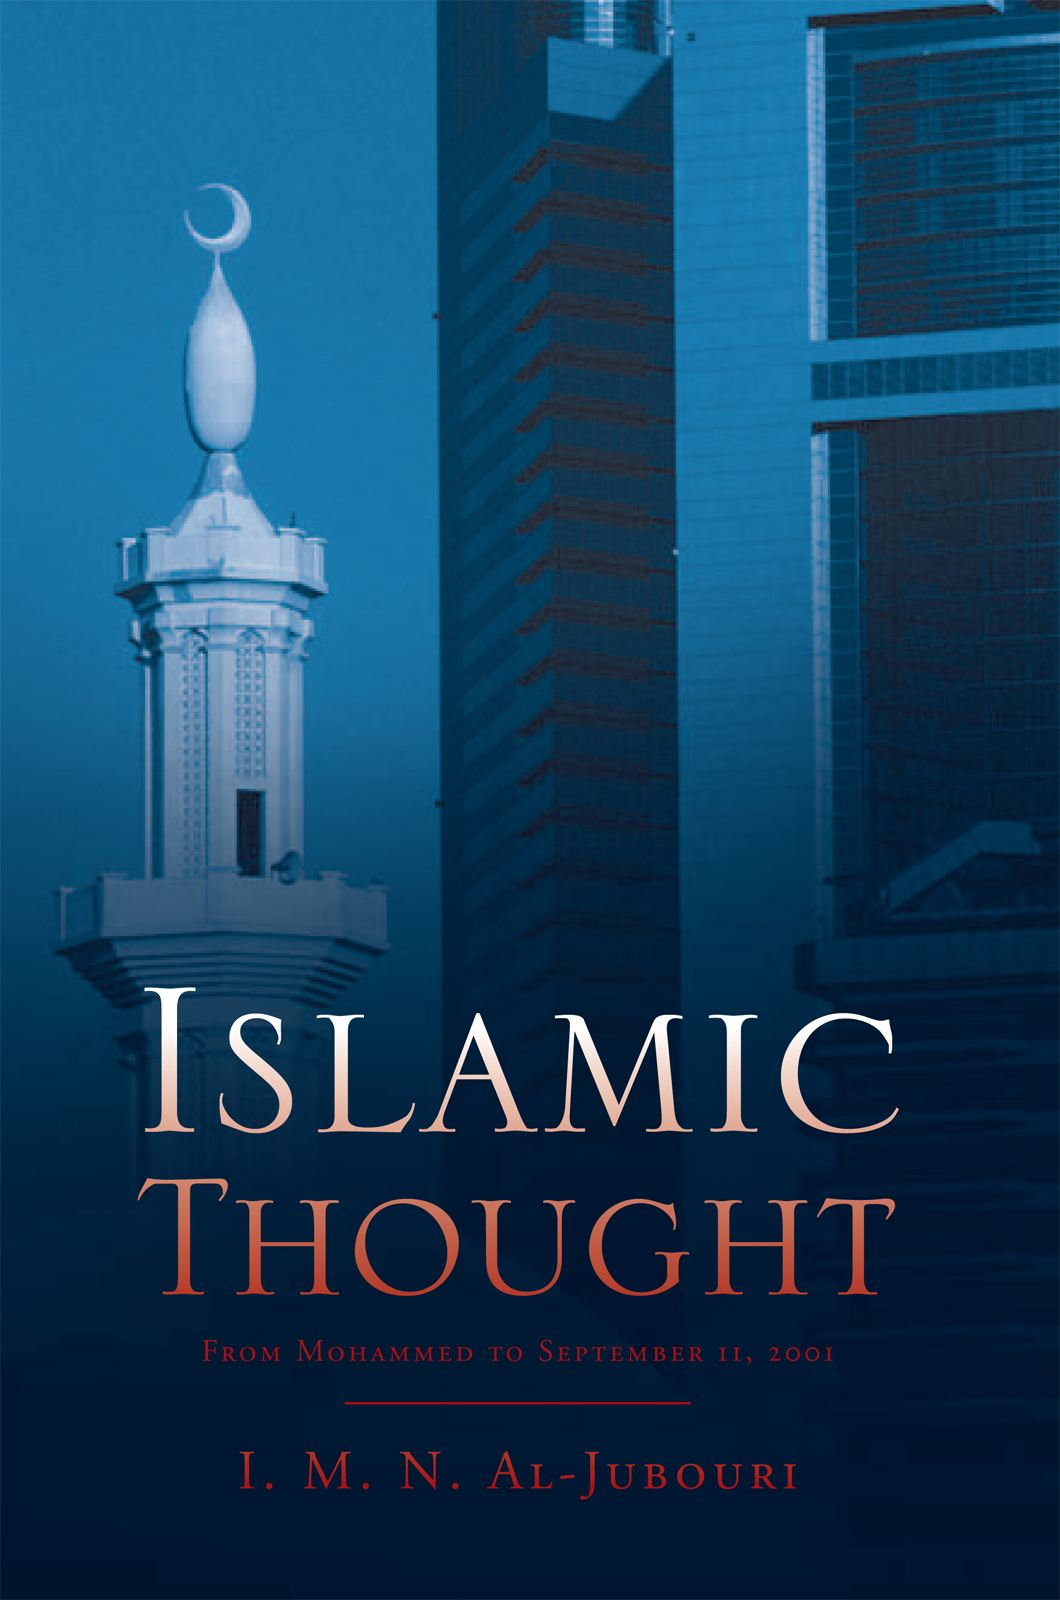 Islamic Thought By: I. M. N. Al-Jubouri